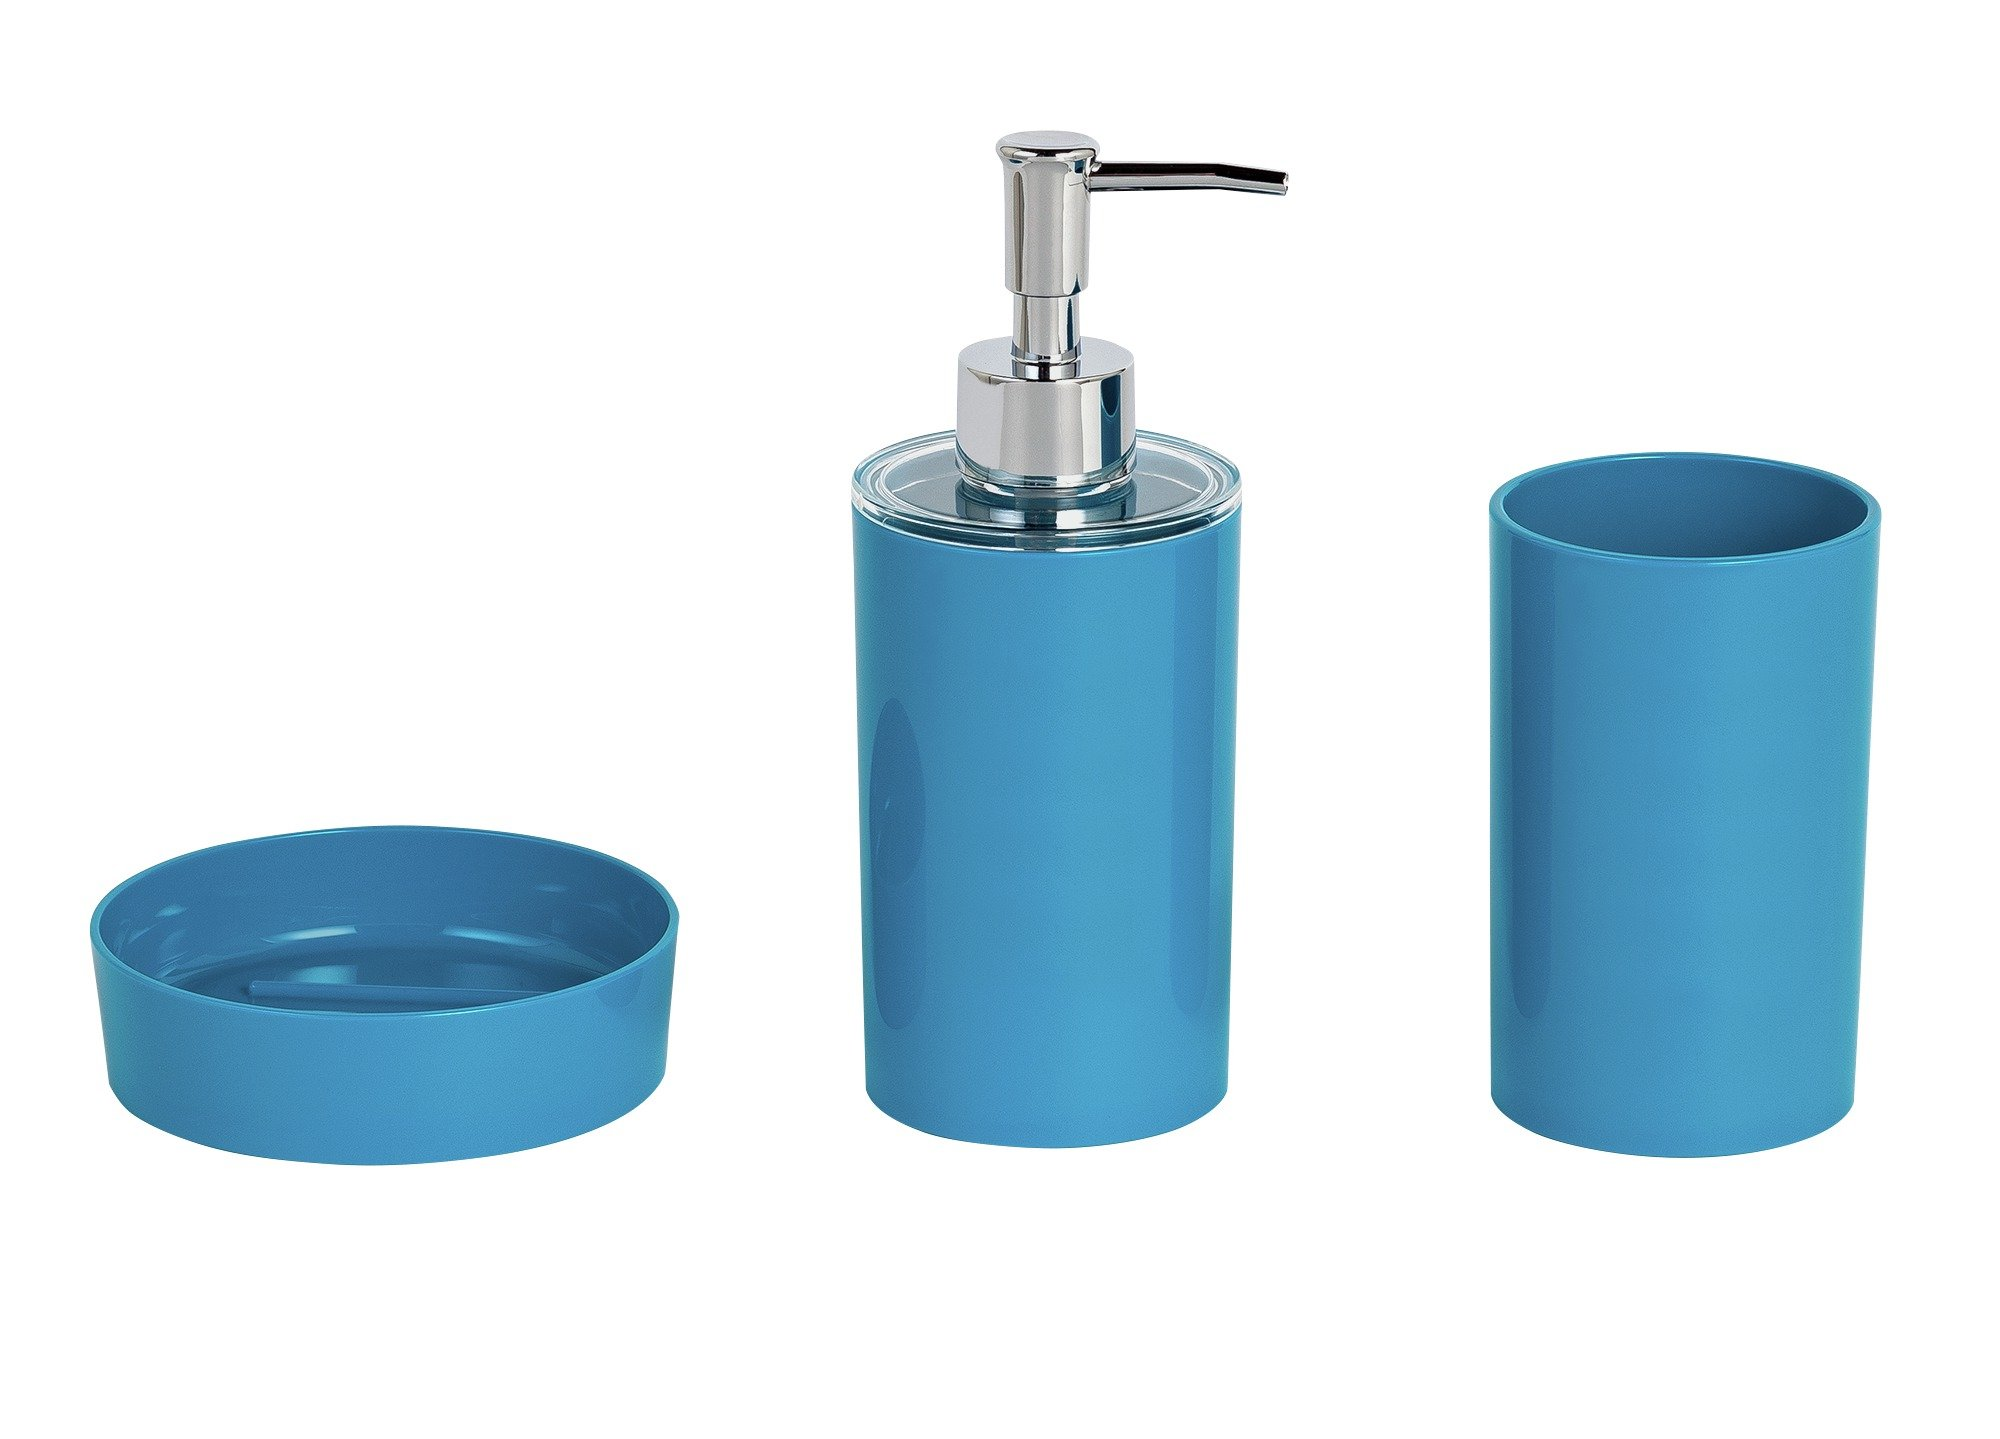 Colourmatch 3 piece bathroom accessory set teal 7036723 for Matching bathroom accessories sets